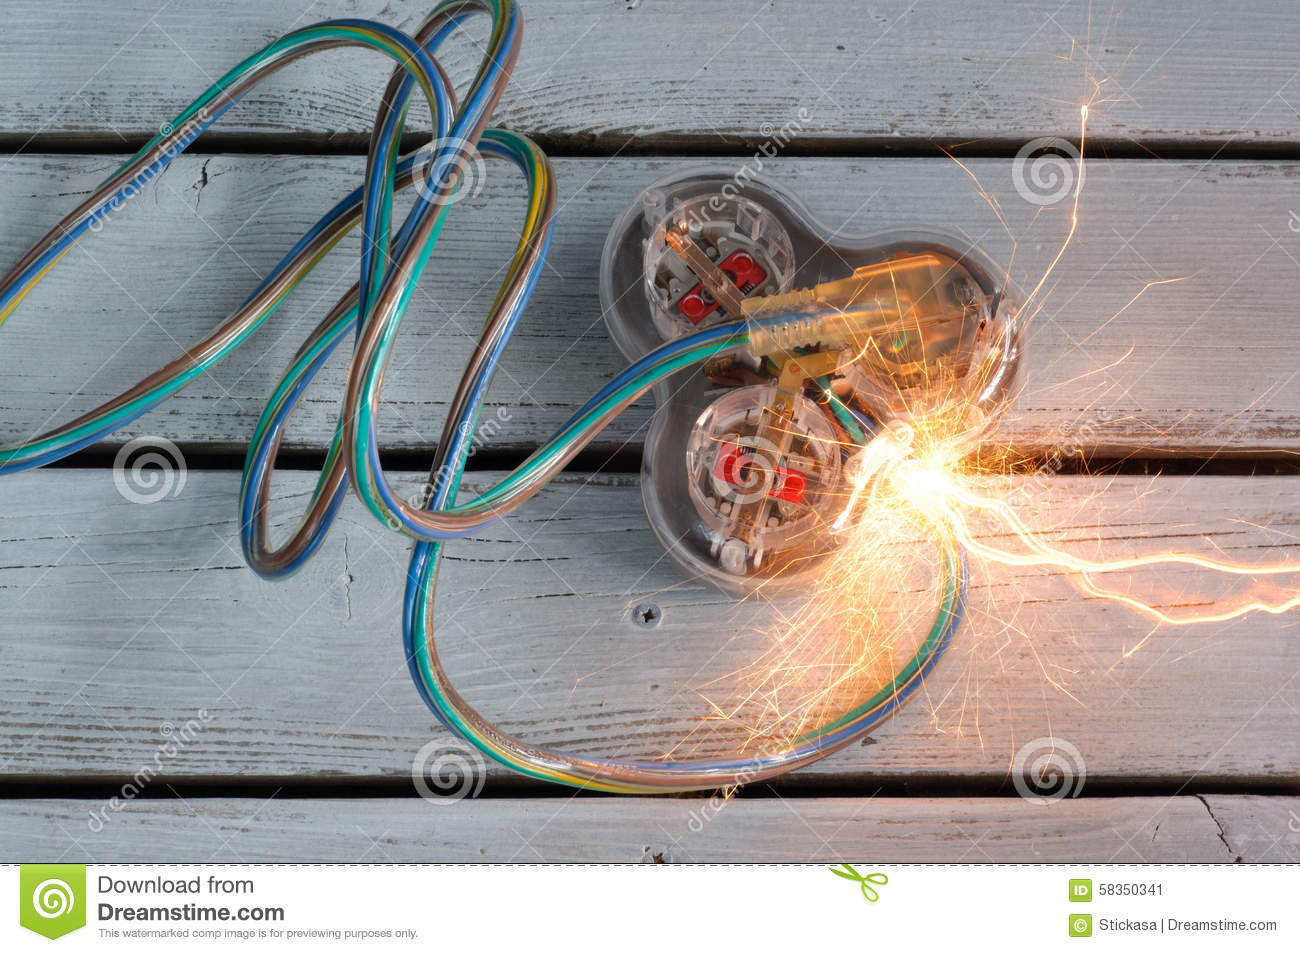 Extension Cord Short Circuit Stock Image Of Cable Wiring A